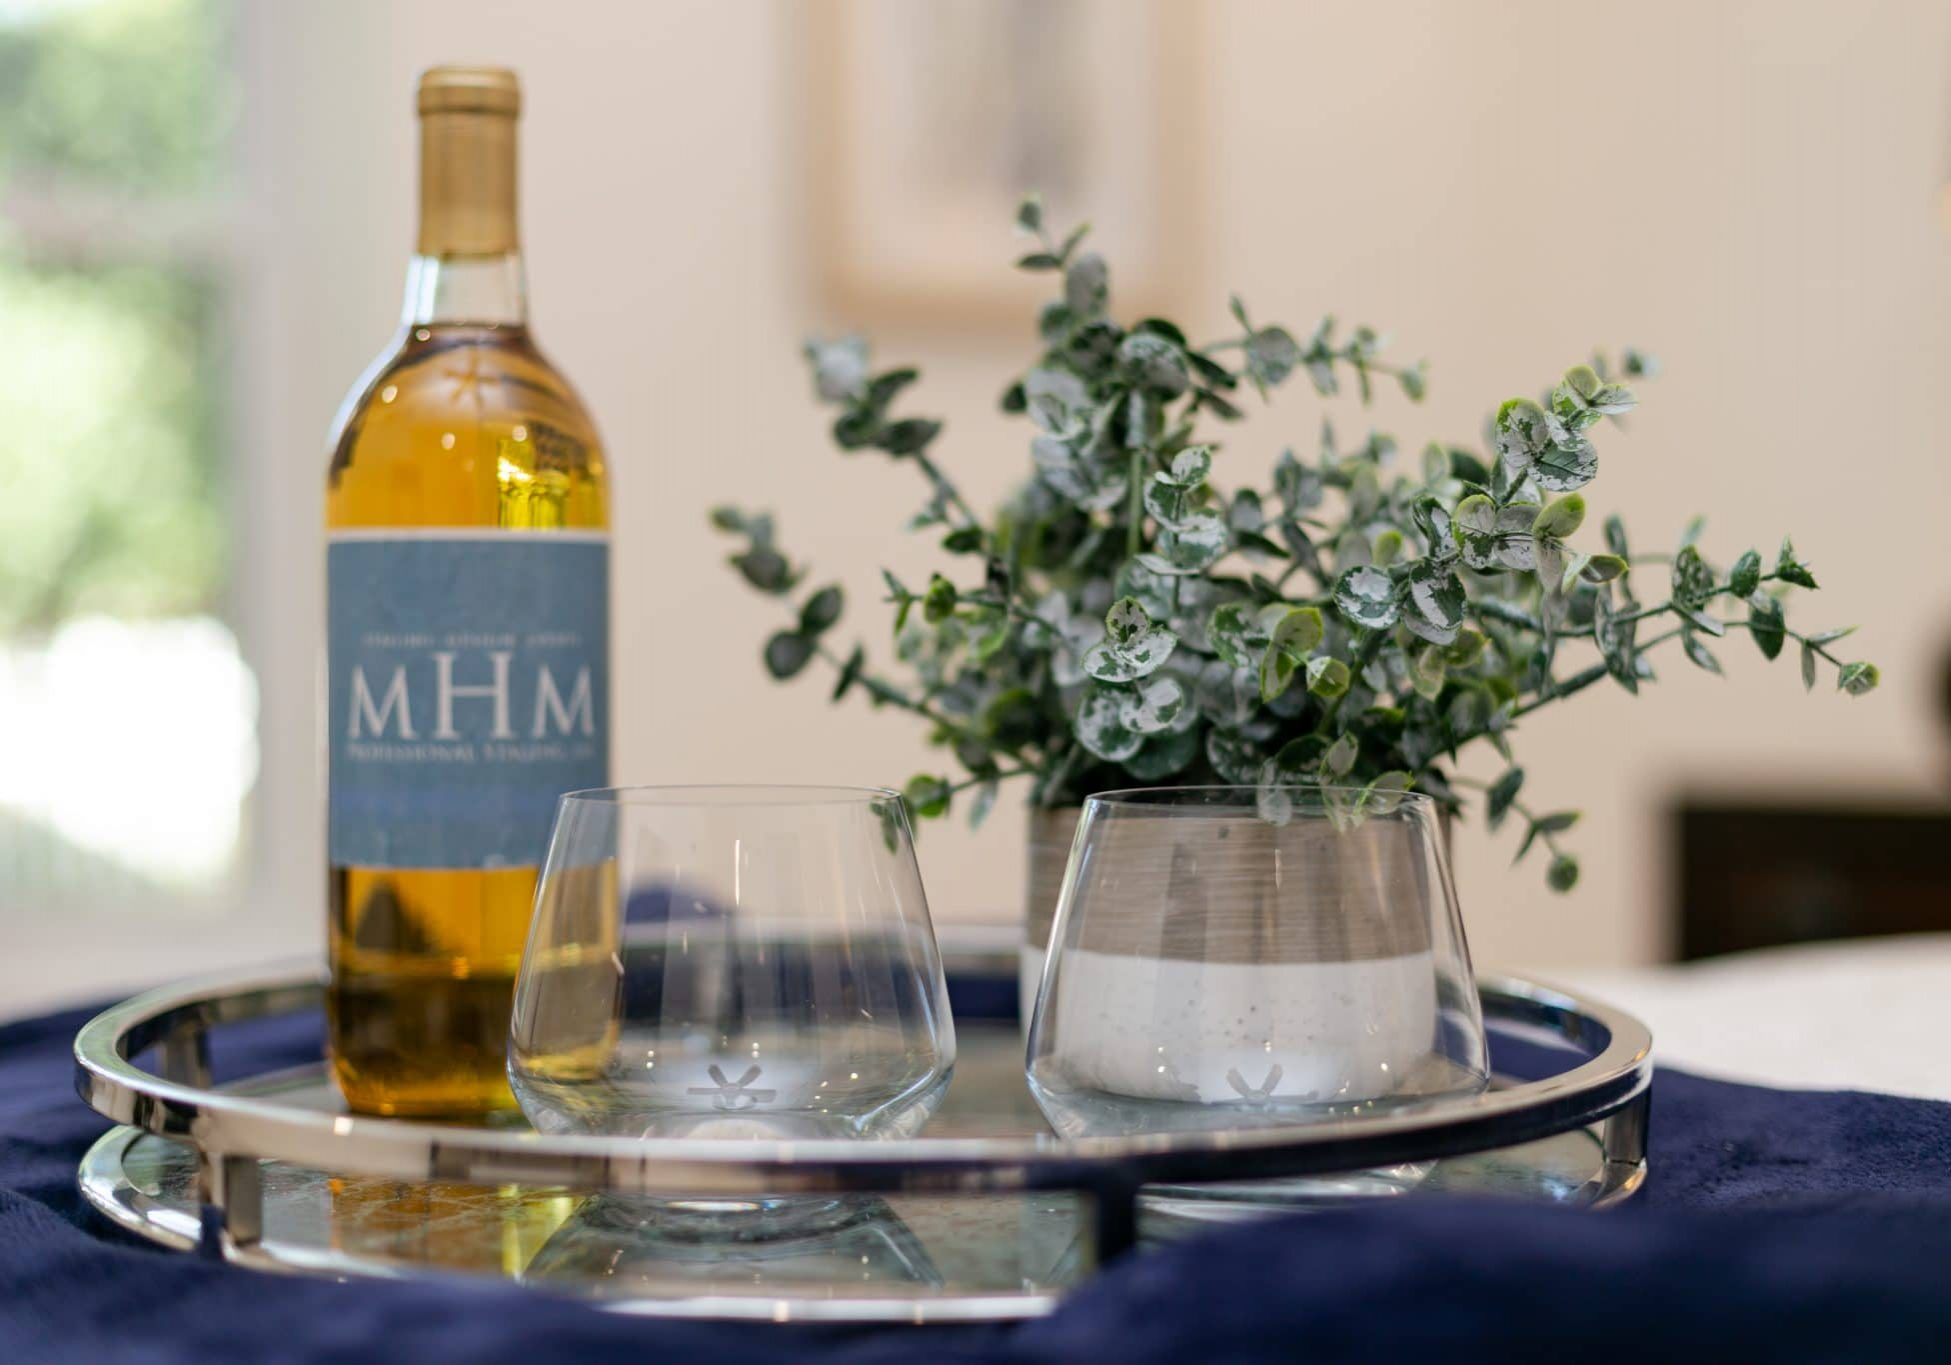 MHM Professional Staging wine bottle, glasses, and plant on a tray